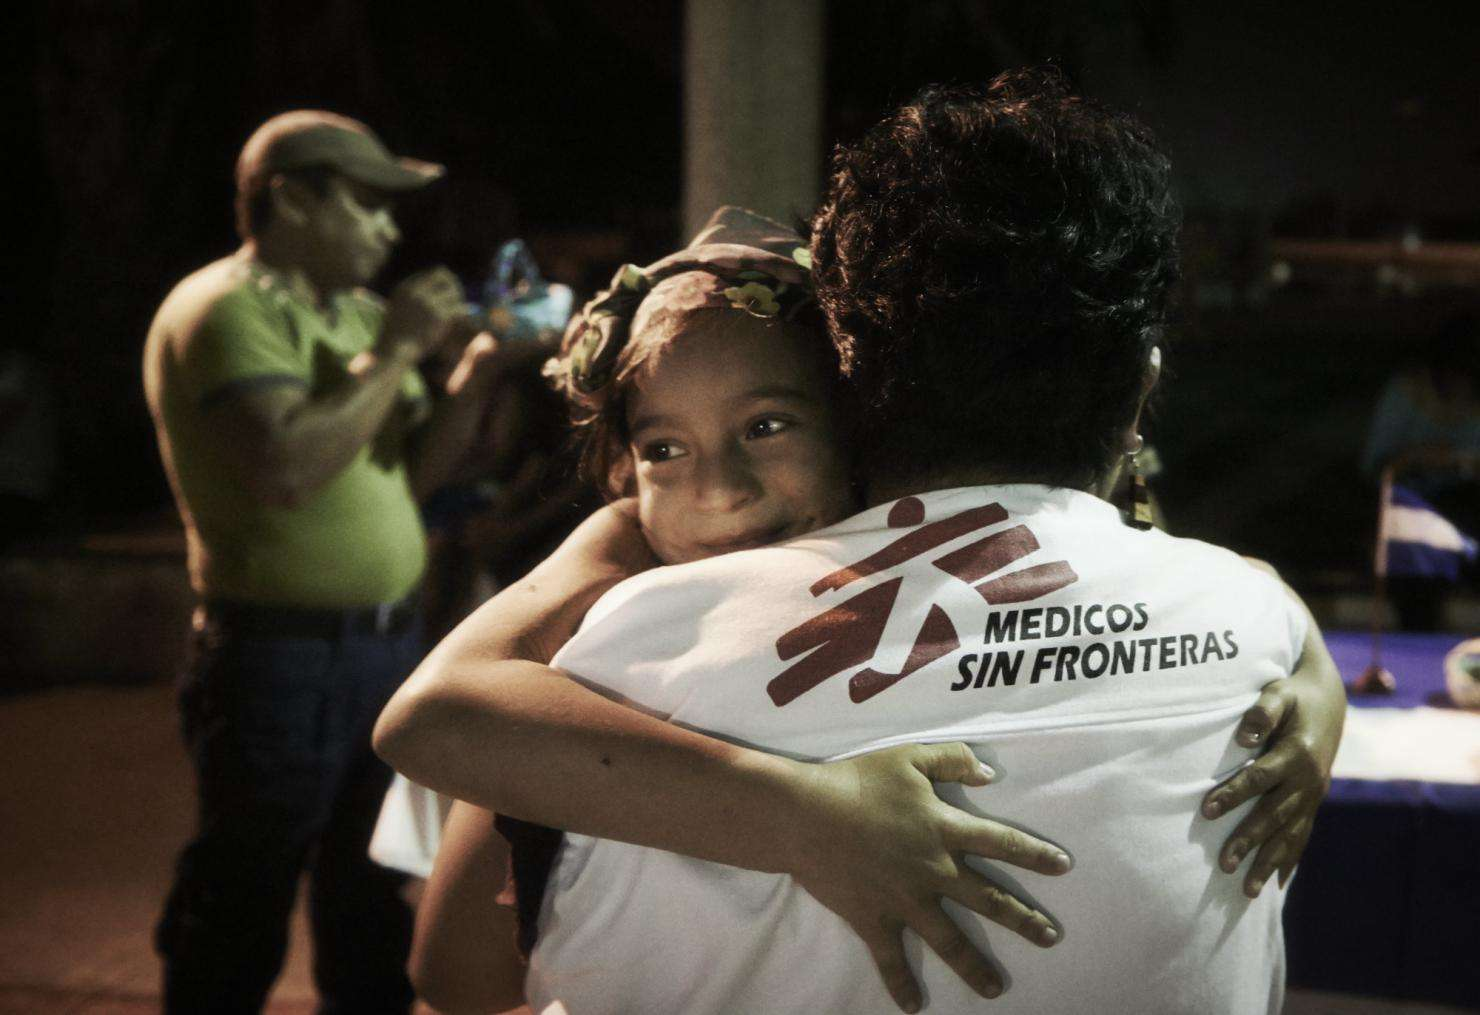 An MSF social worker hugs a migrant girl.